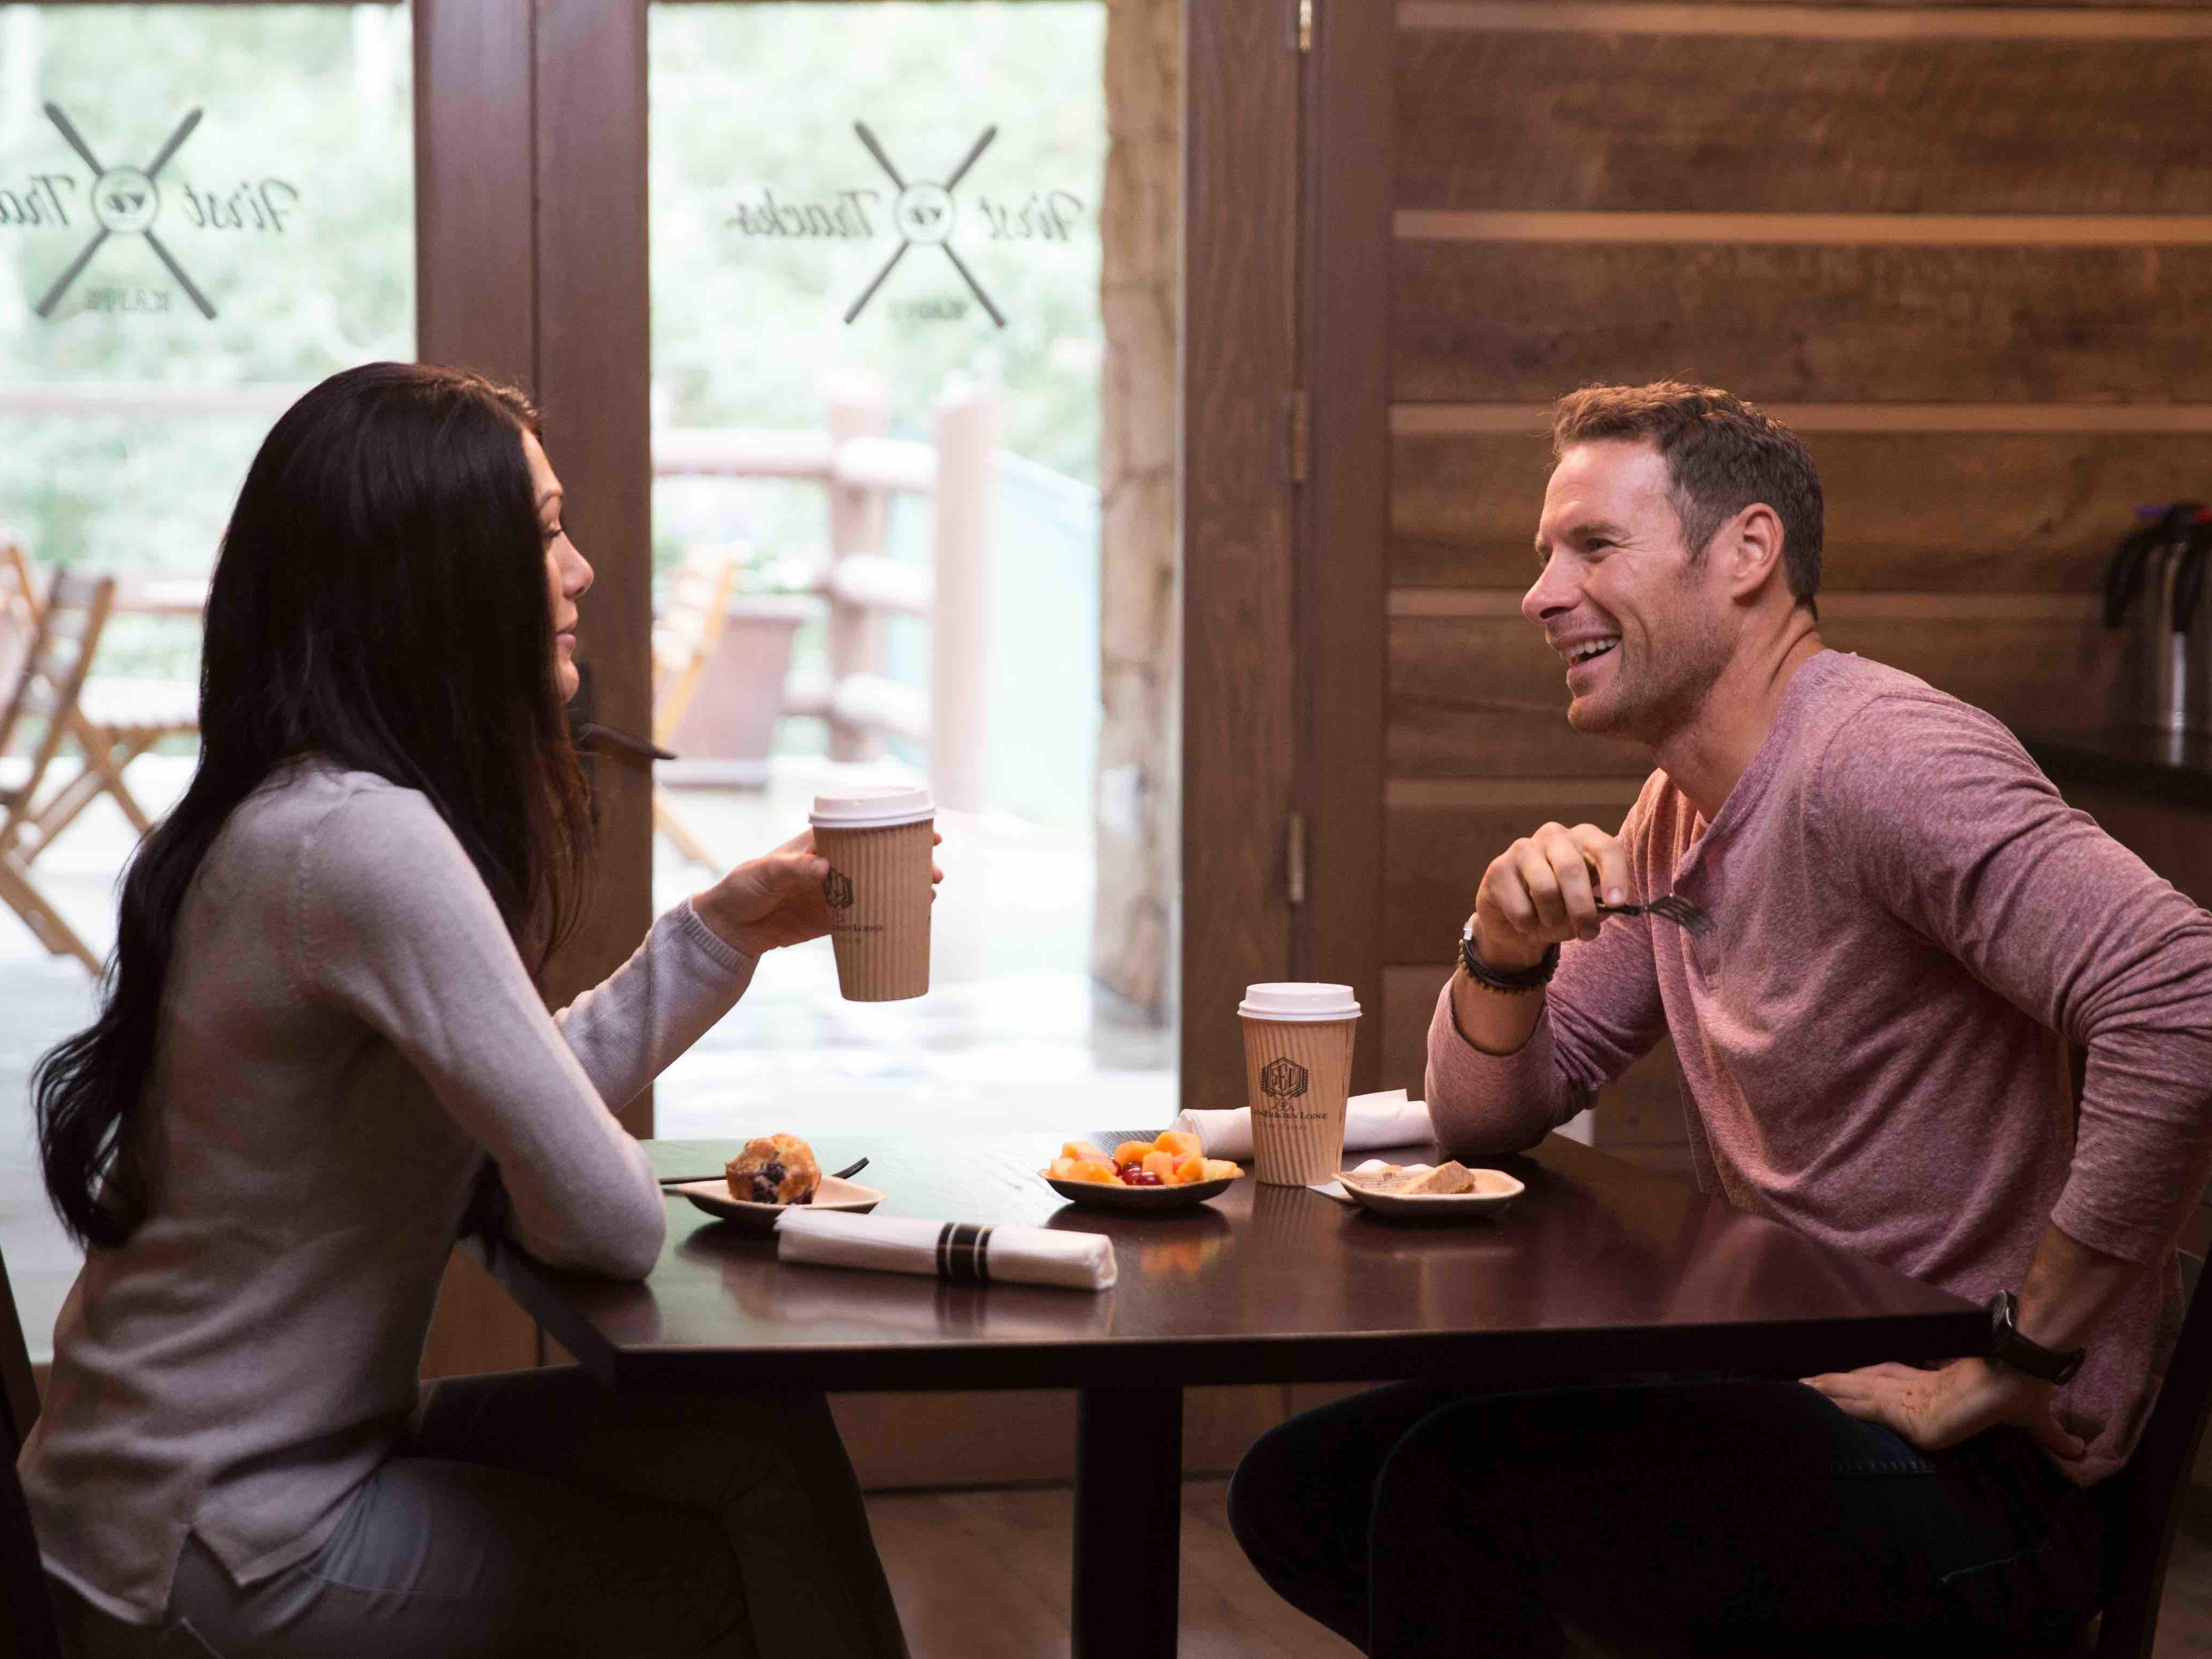 First Tracks Kaffe lifestyle couple dining